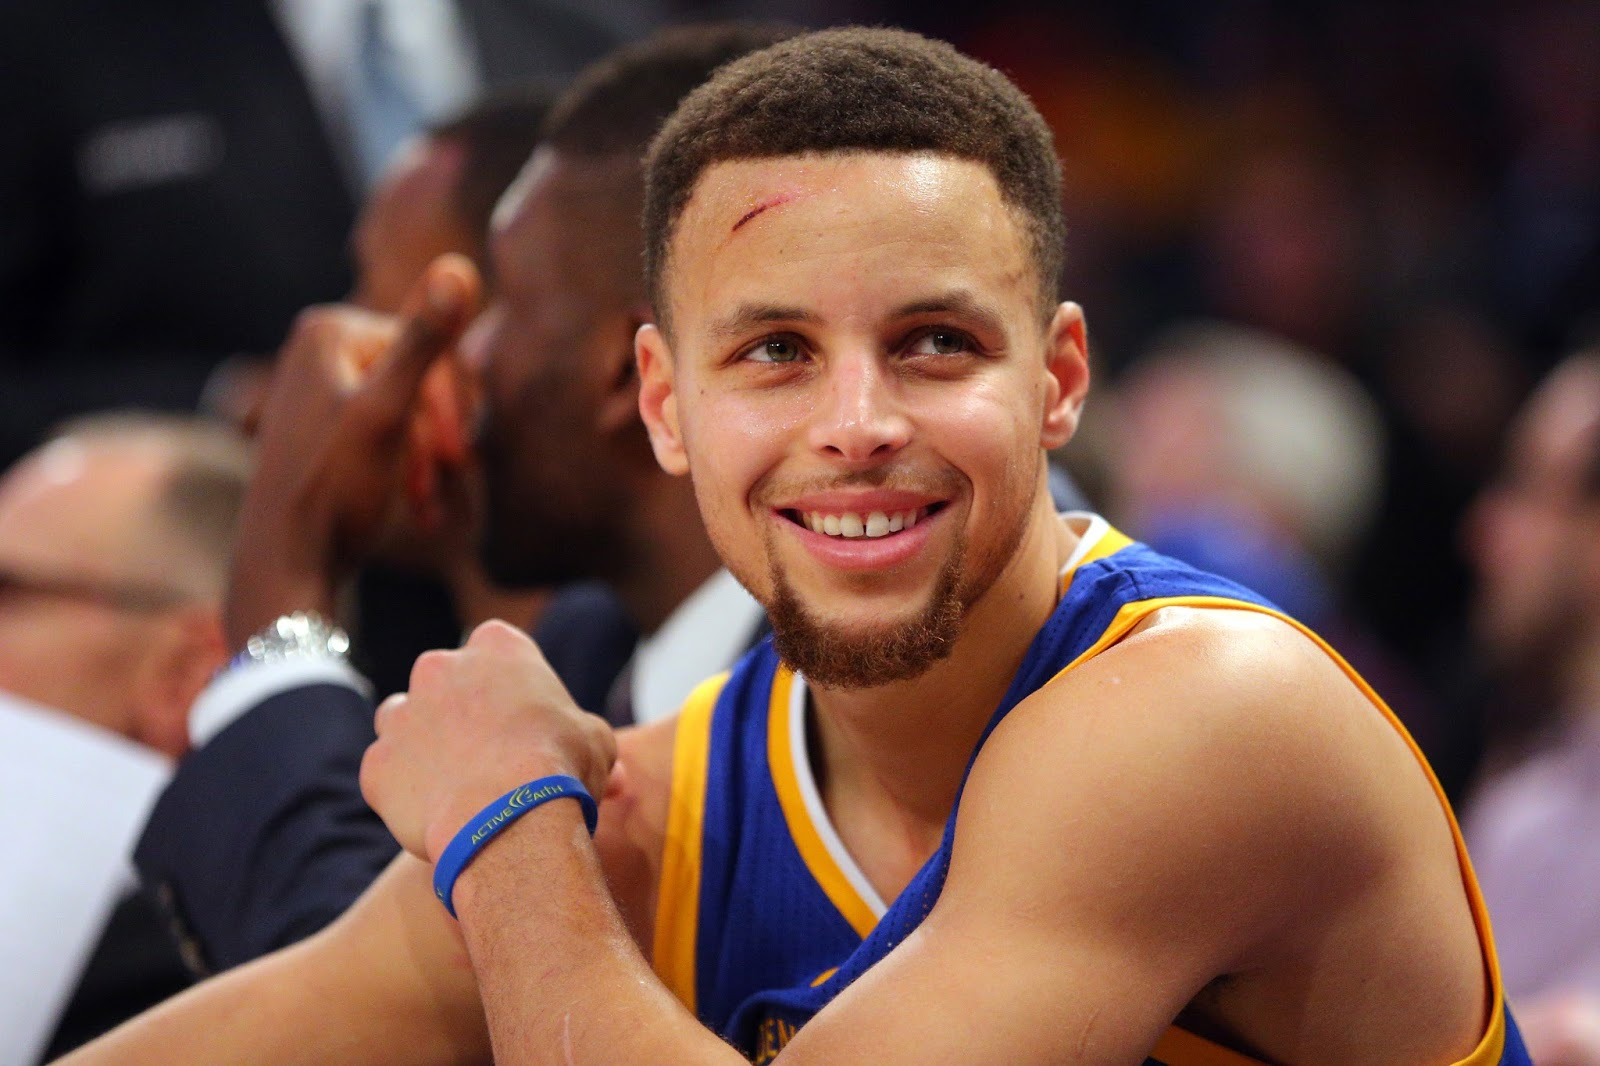 Steph Curry explains why he writes Philippians 4:13 on his sneakers